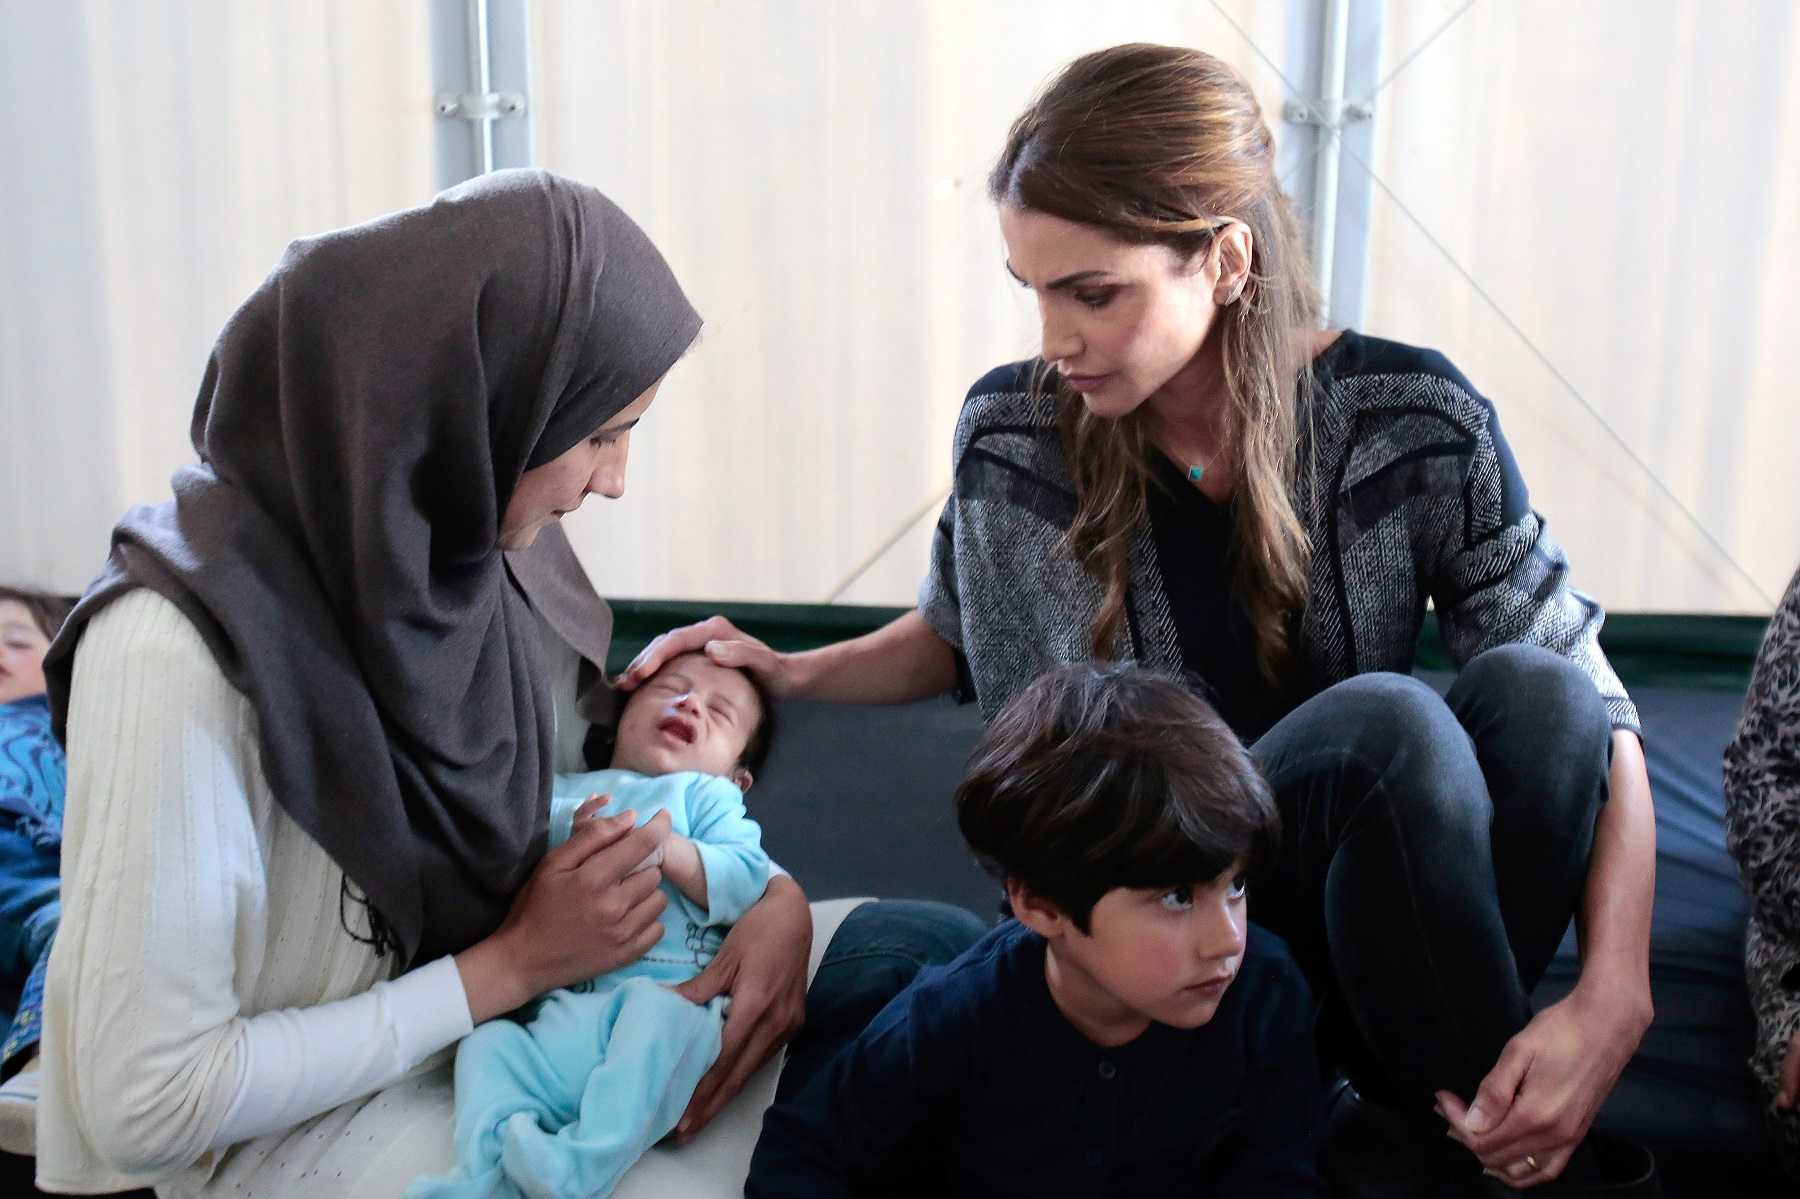 MYTILENE, GREECE - APRIl 25:  Queen Rania of Jordan meets Syrian refuges at the Karatepe municipality camp for refugees on the outskirts of Mytilene, on April 25, 2016 in Lesbos, Greece. Queen Rania has travelled to Lesbos at the invitation of the International Rescue Committee (IRC), her visit coming just over a week after that of Pope Francis. (Photo by Milos Bicanski/Getty Images)